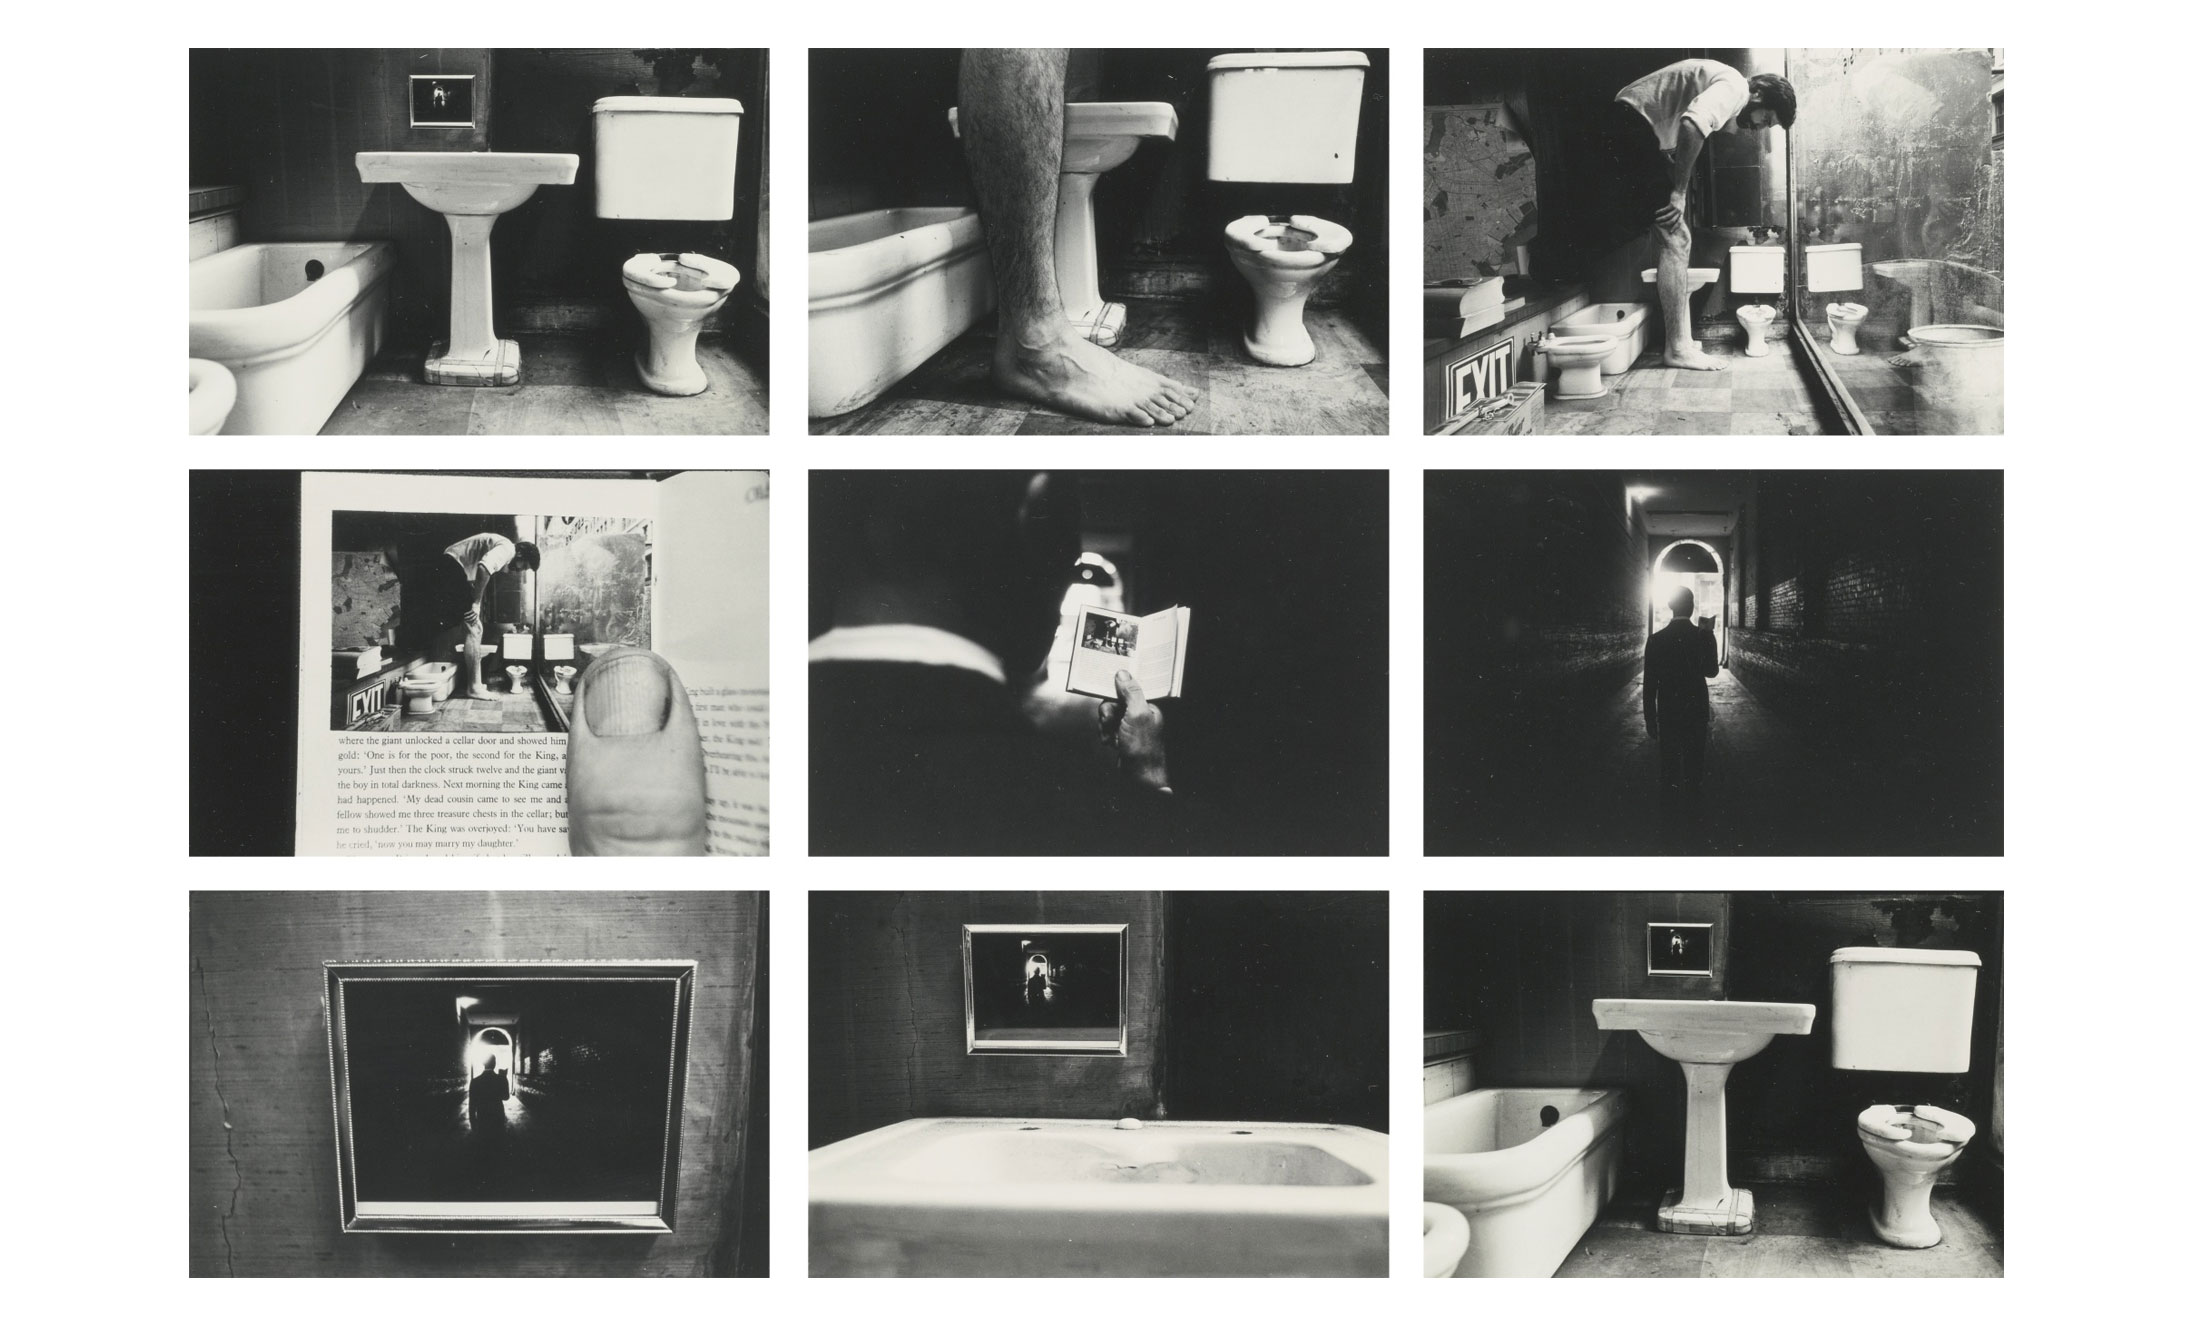 Duane-Michals-Things-are-Queer-Les-choses-sont-bizarres-1973-sequence-photo